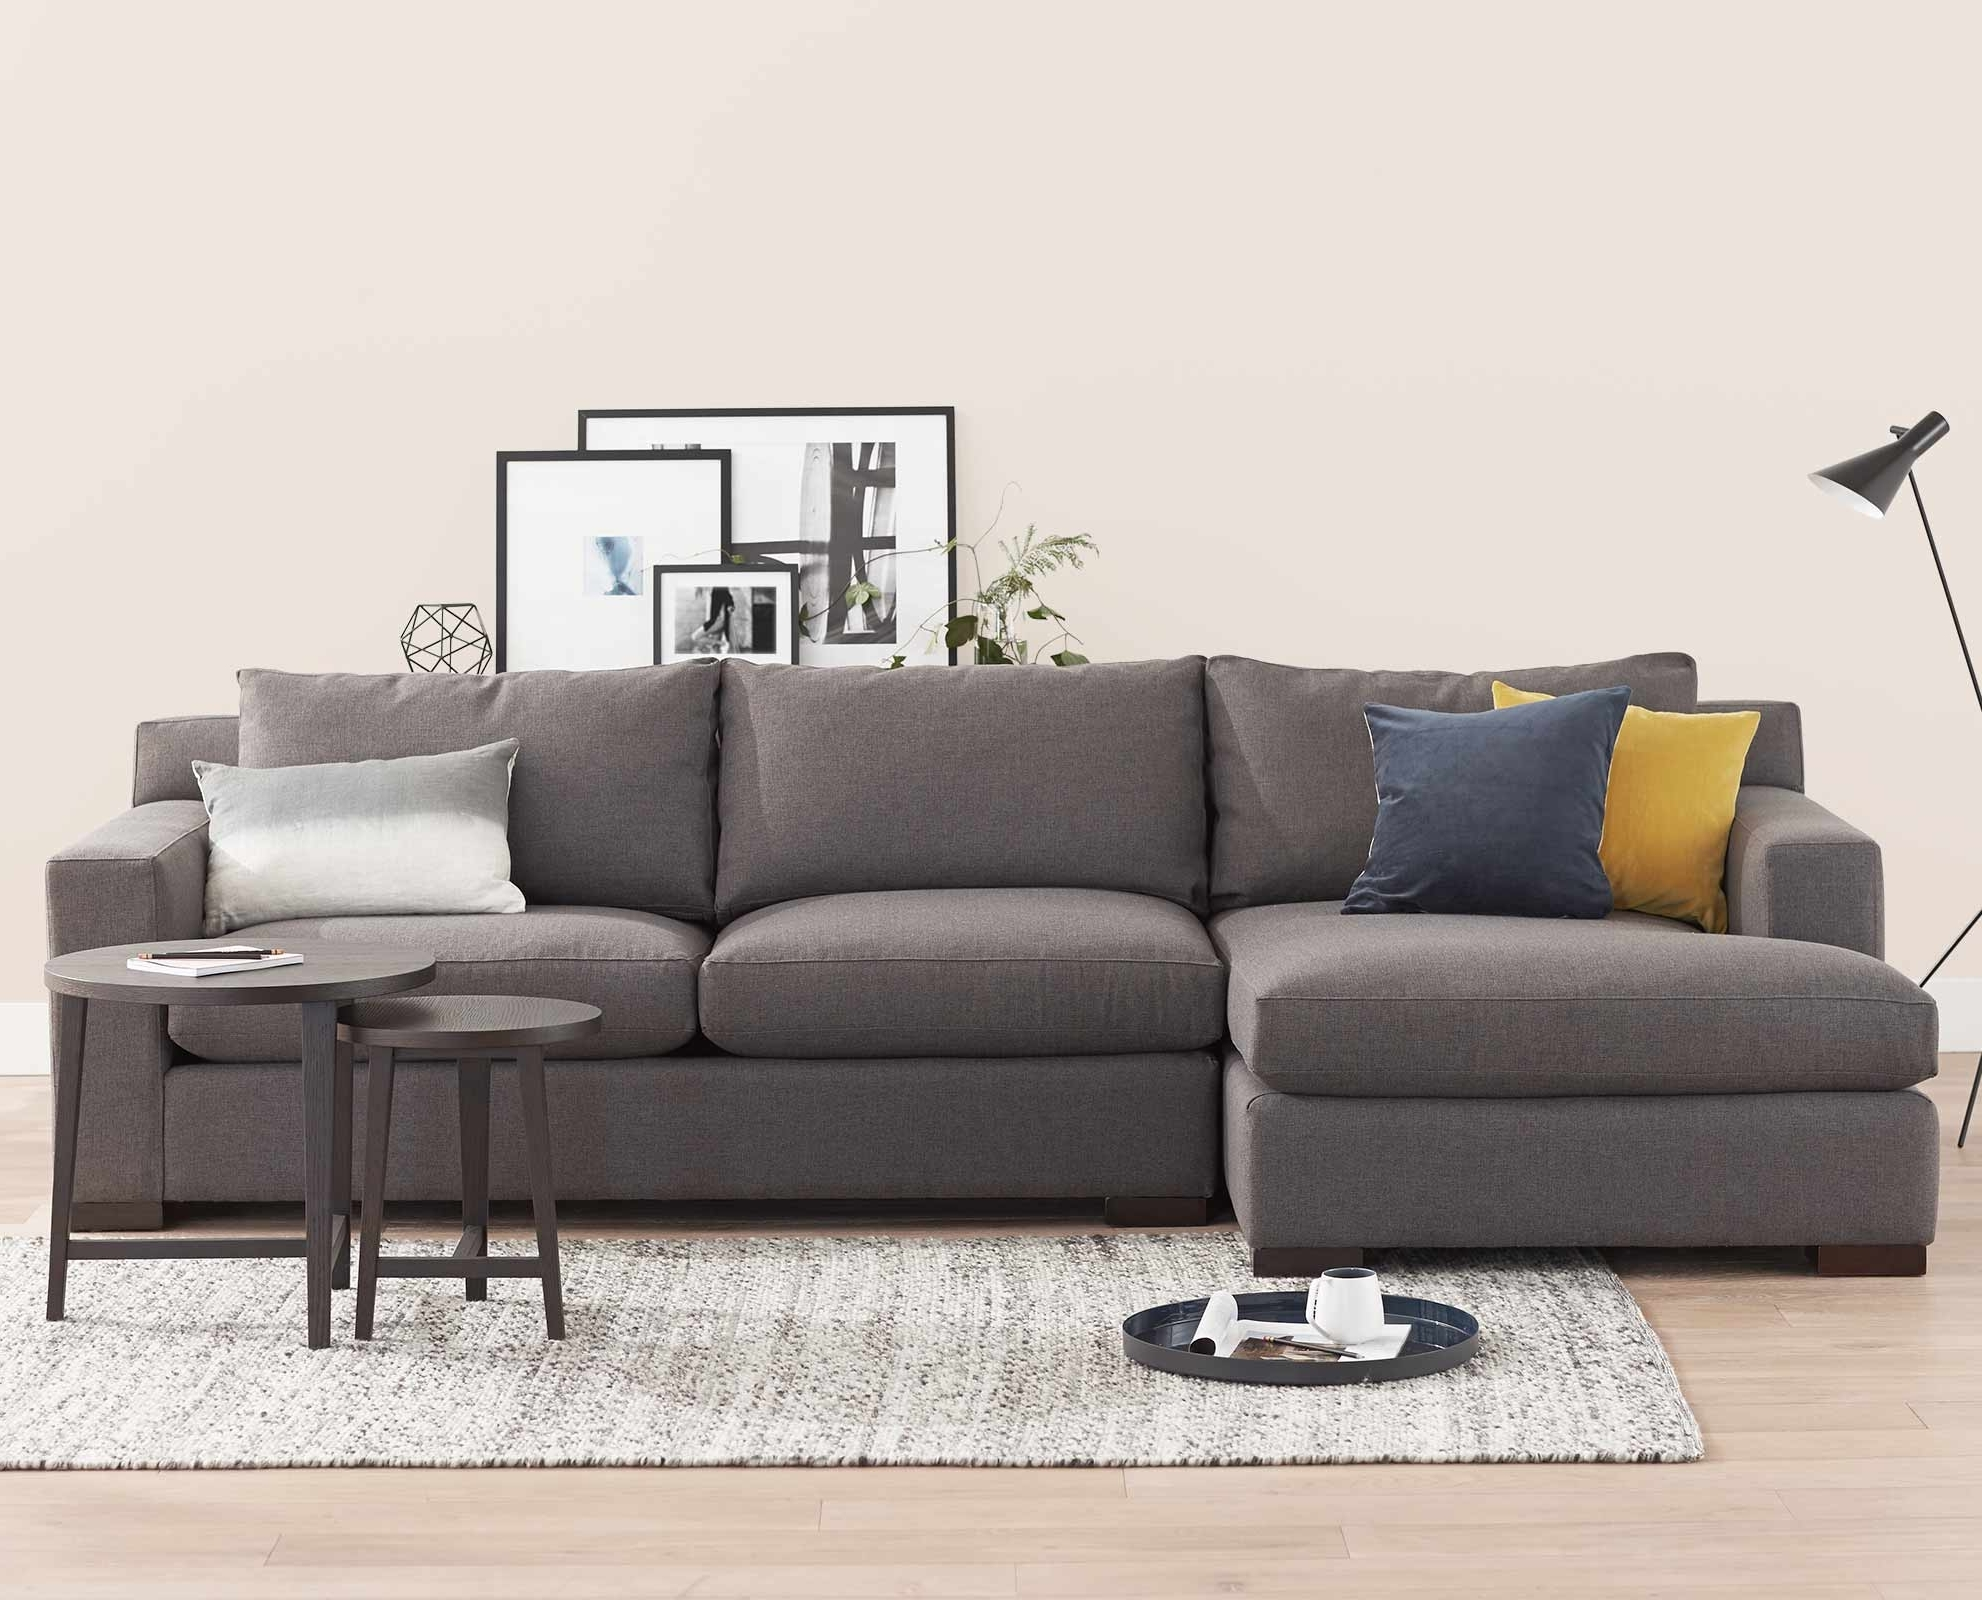 Scandinavian Designs – Always Cozy And Always Classic, The Aida Inside Well Liked Dania Sectional Sofas (View 11 of 15)